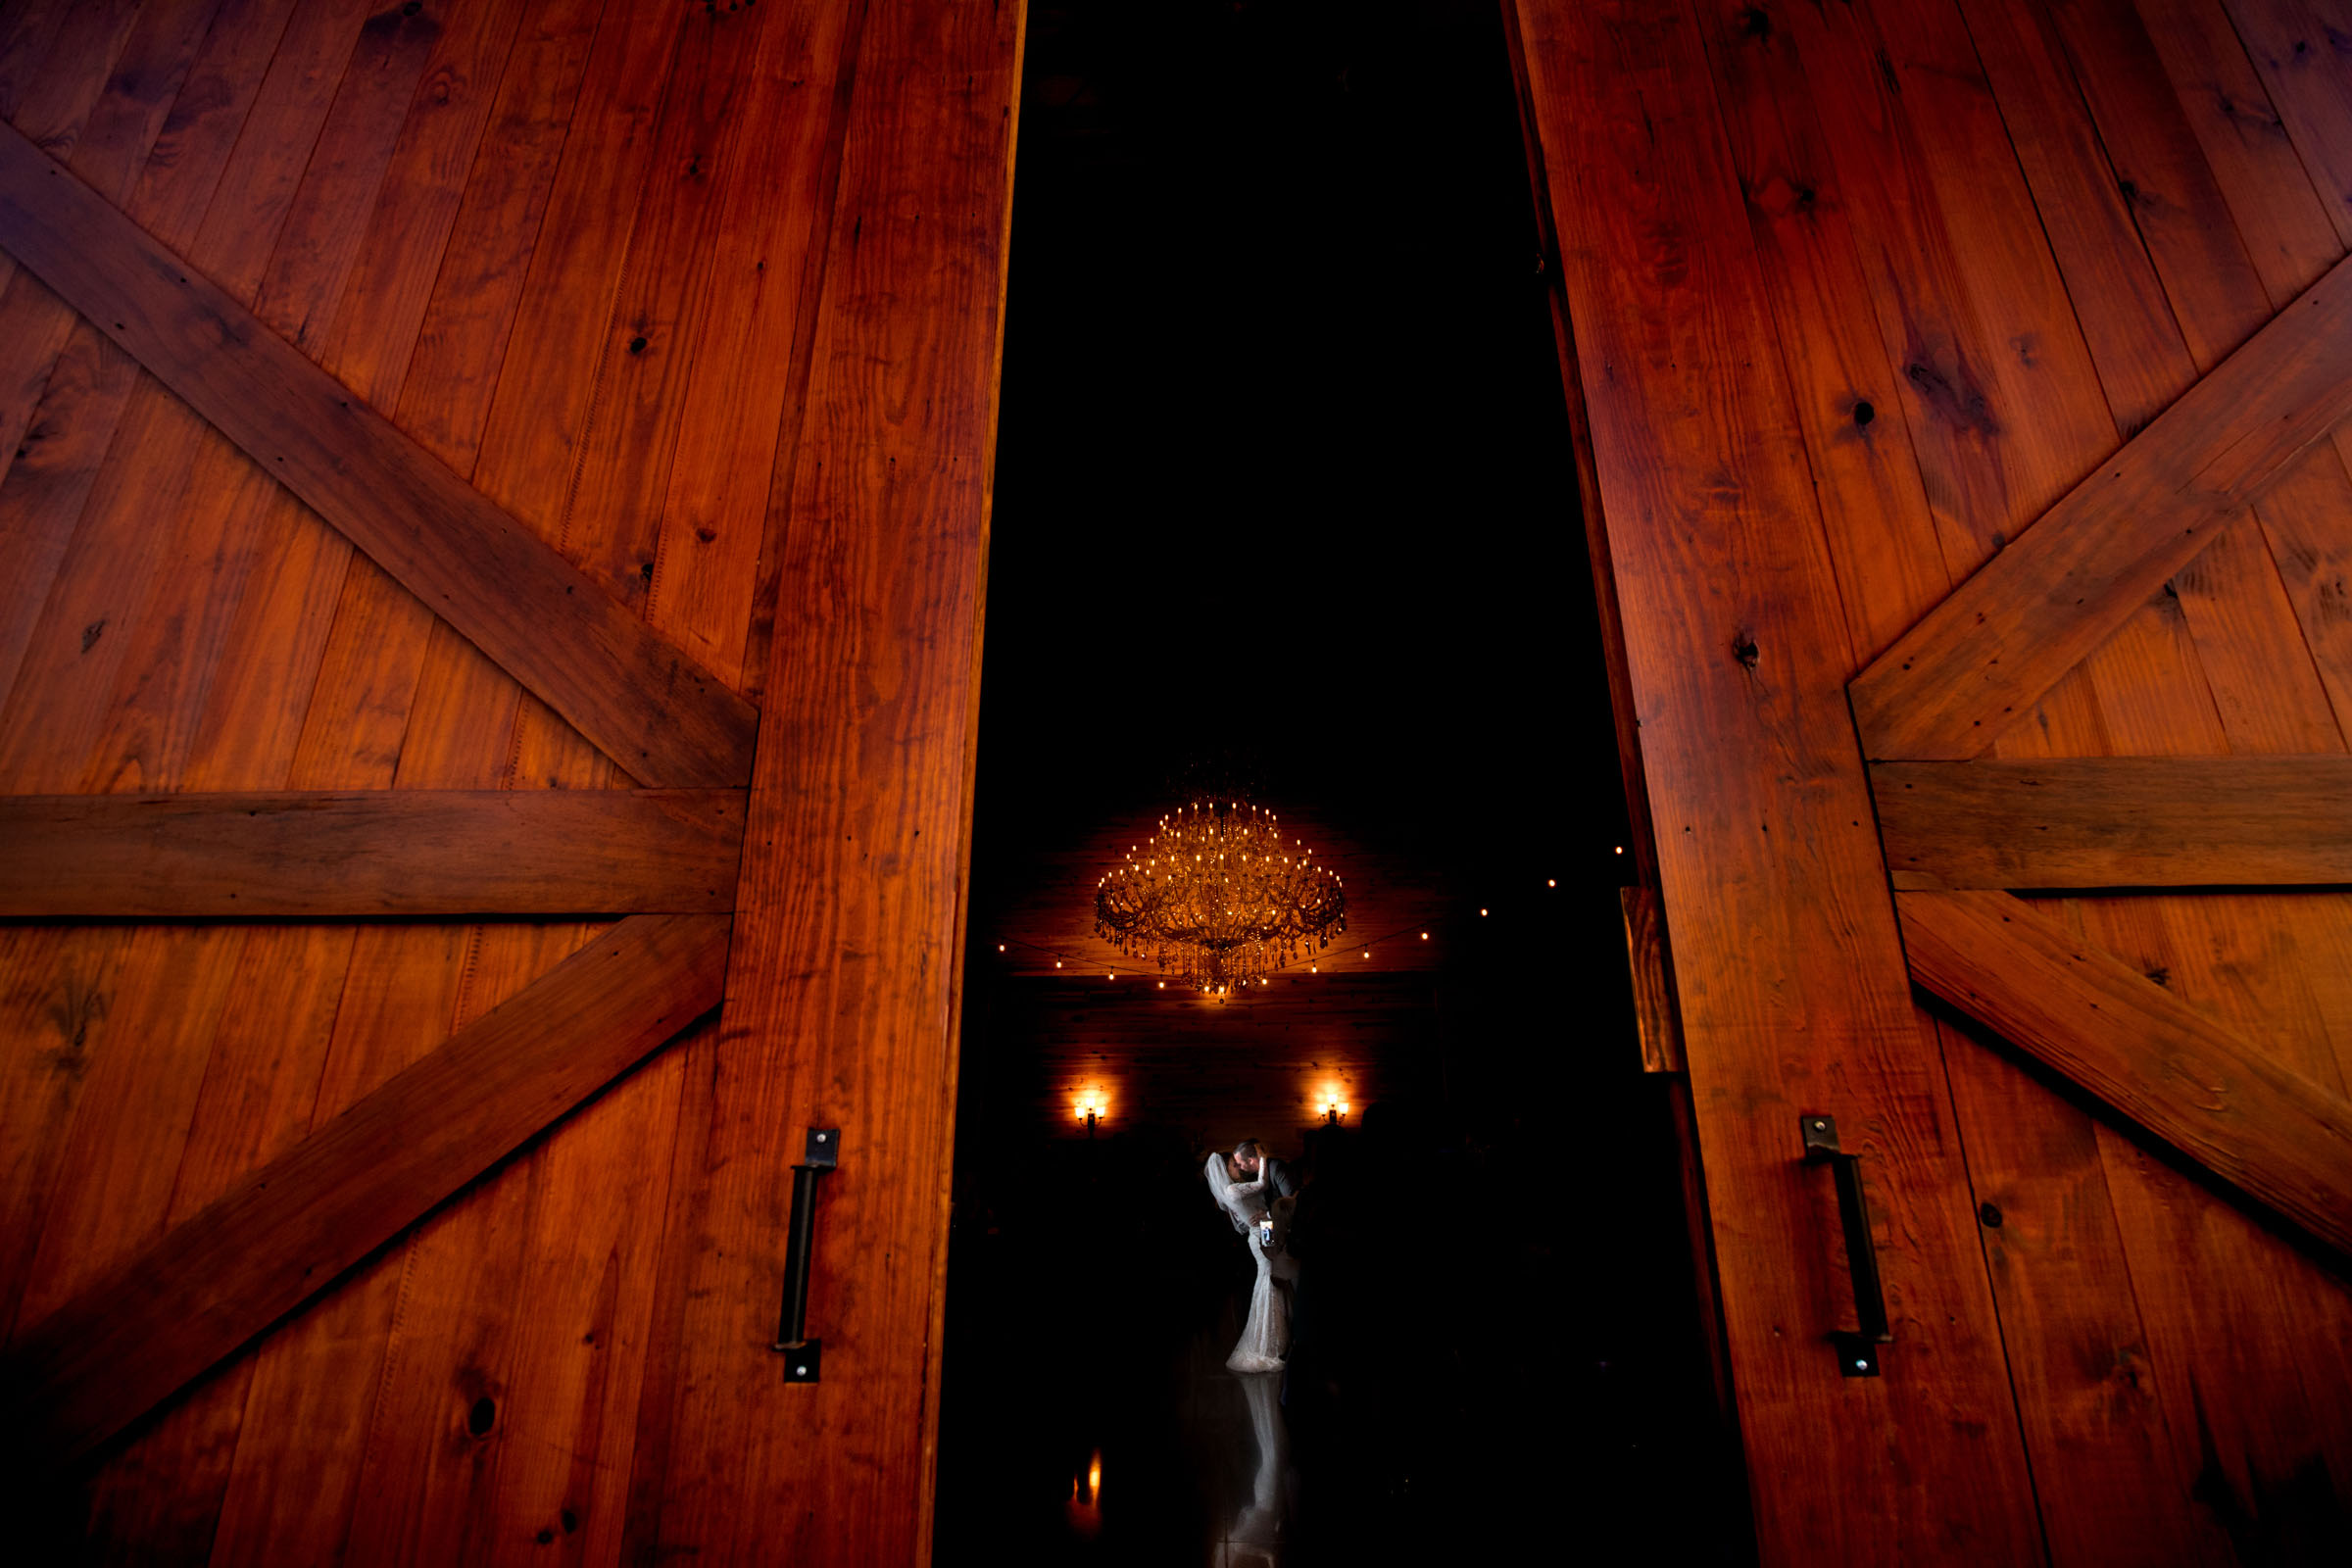 Kissing silhouette through wooden doors - photo by Marissa Joy Photography